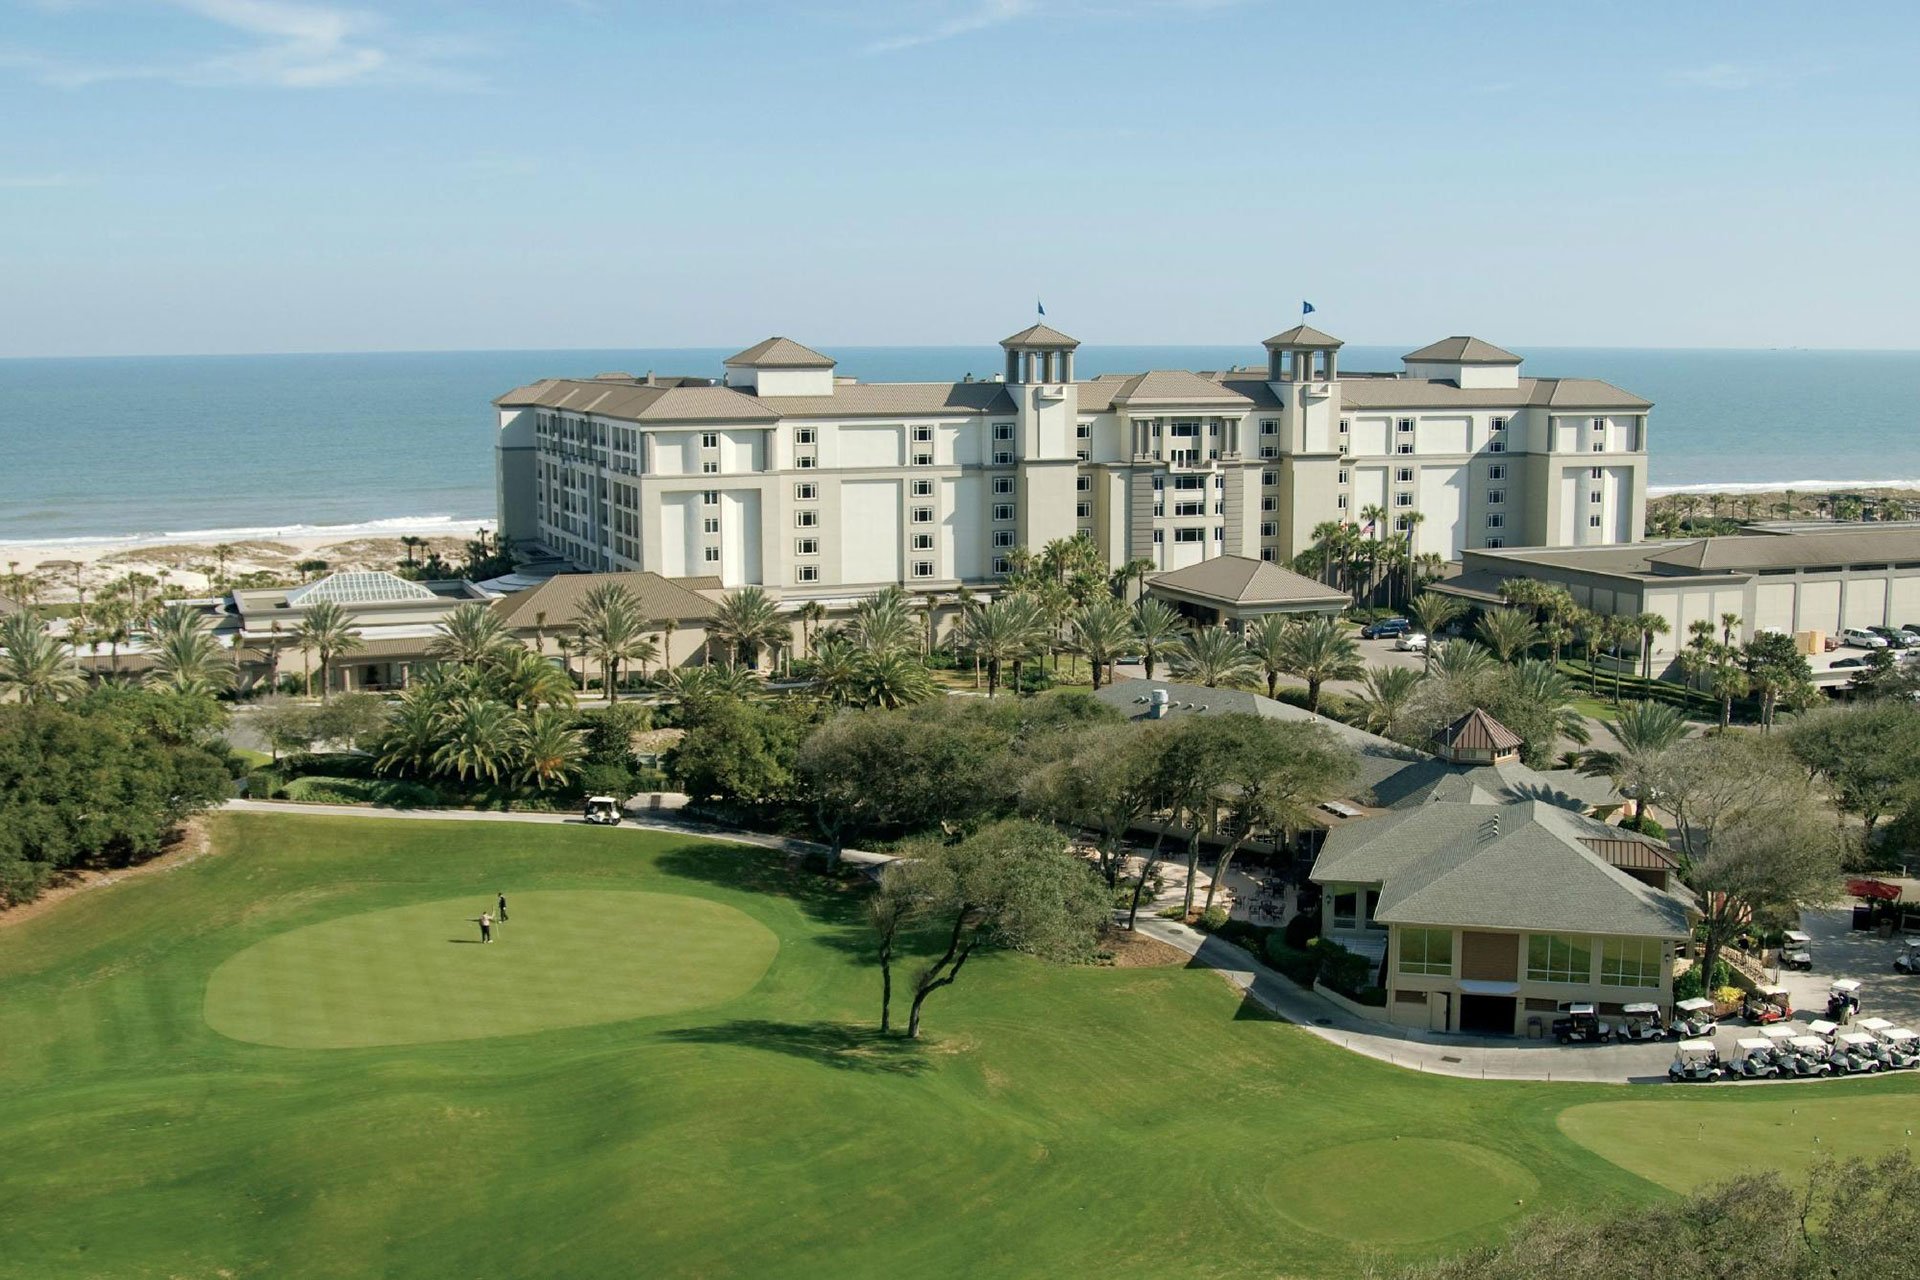 The Ritz-Carlton, Amelia Island; Courtesy of The Ritz-Carlton, Amelia Island